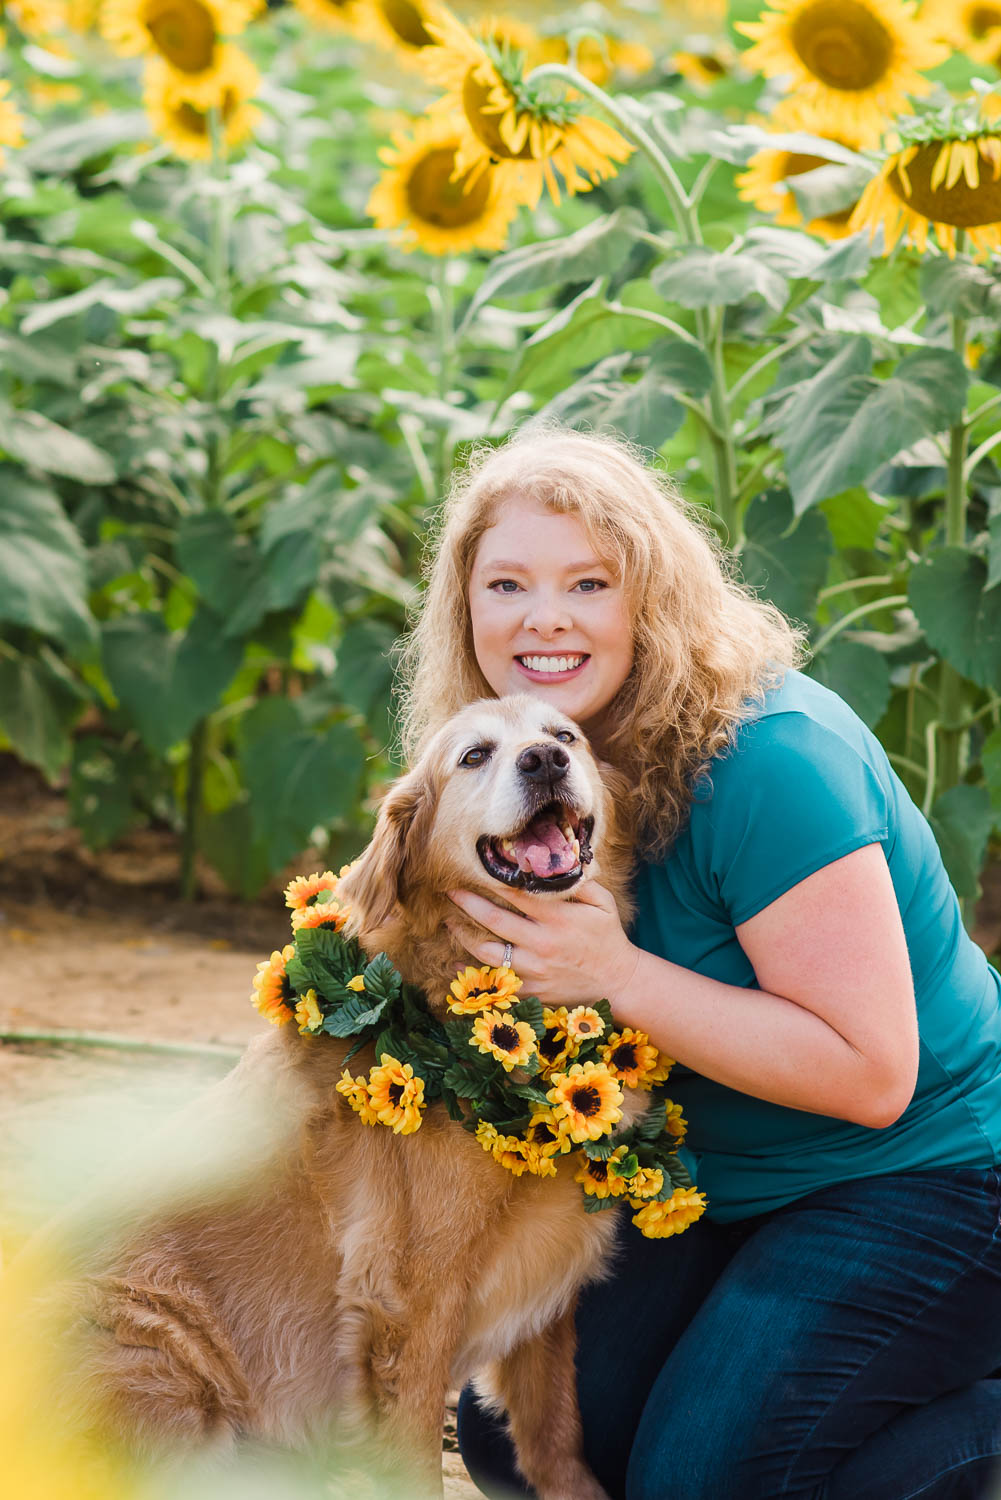 one person hugging dog with sunflower garland